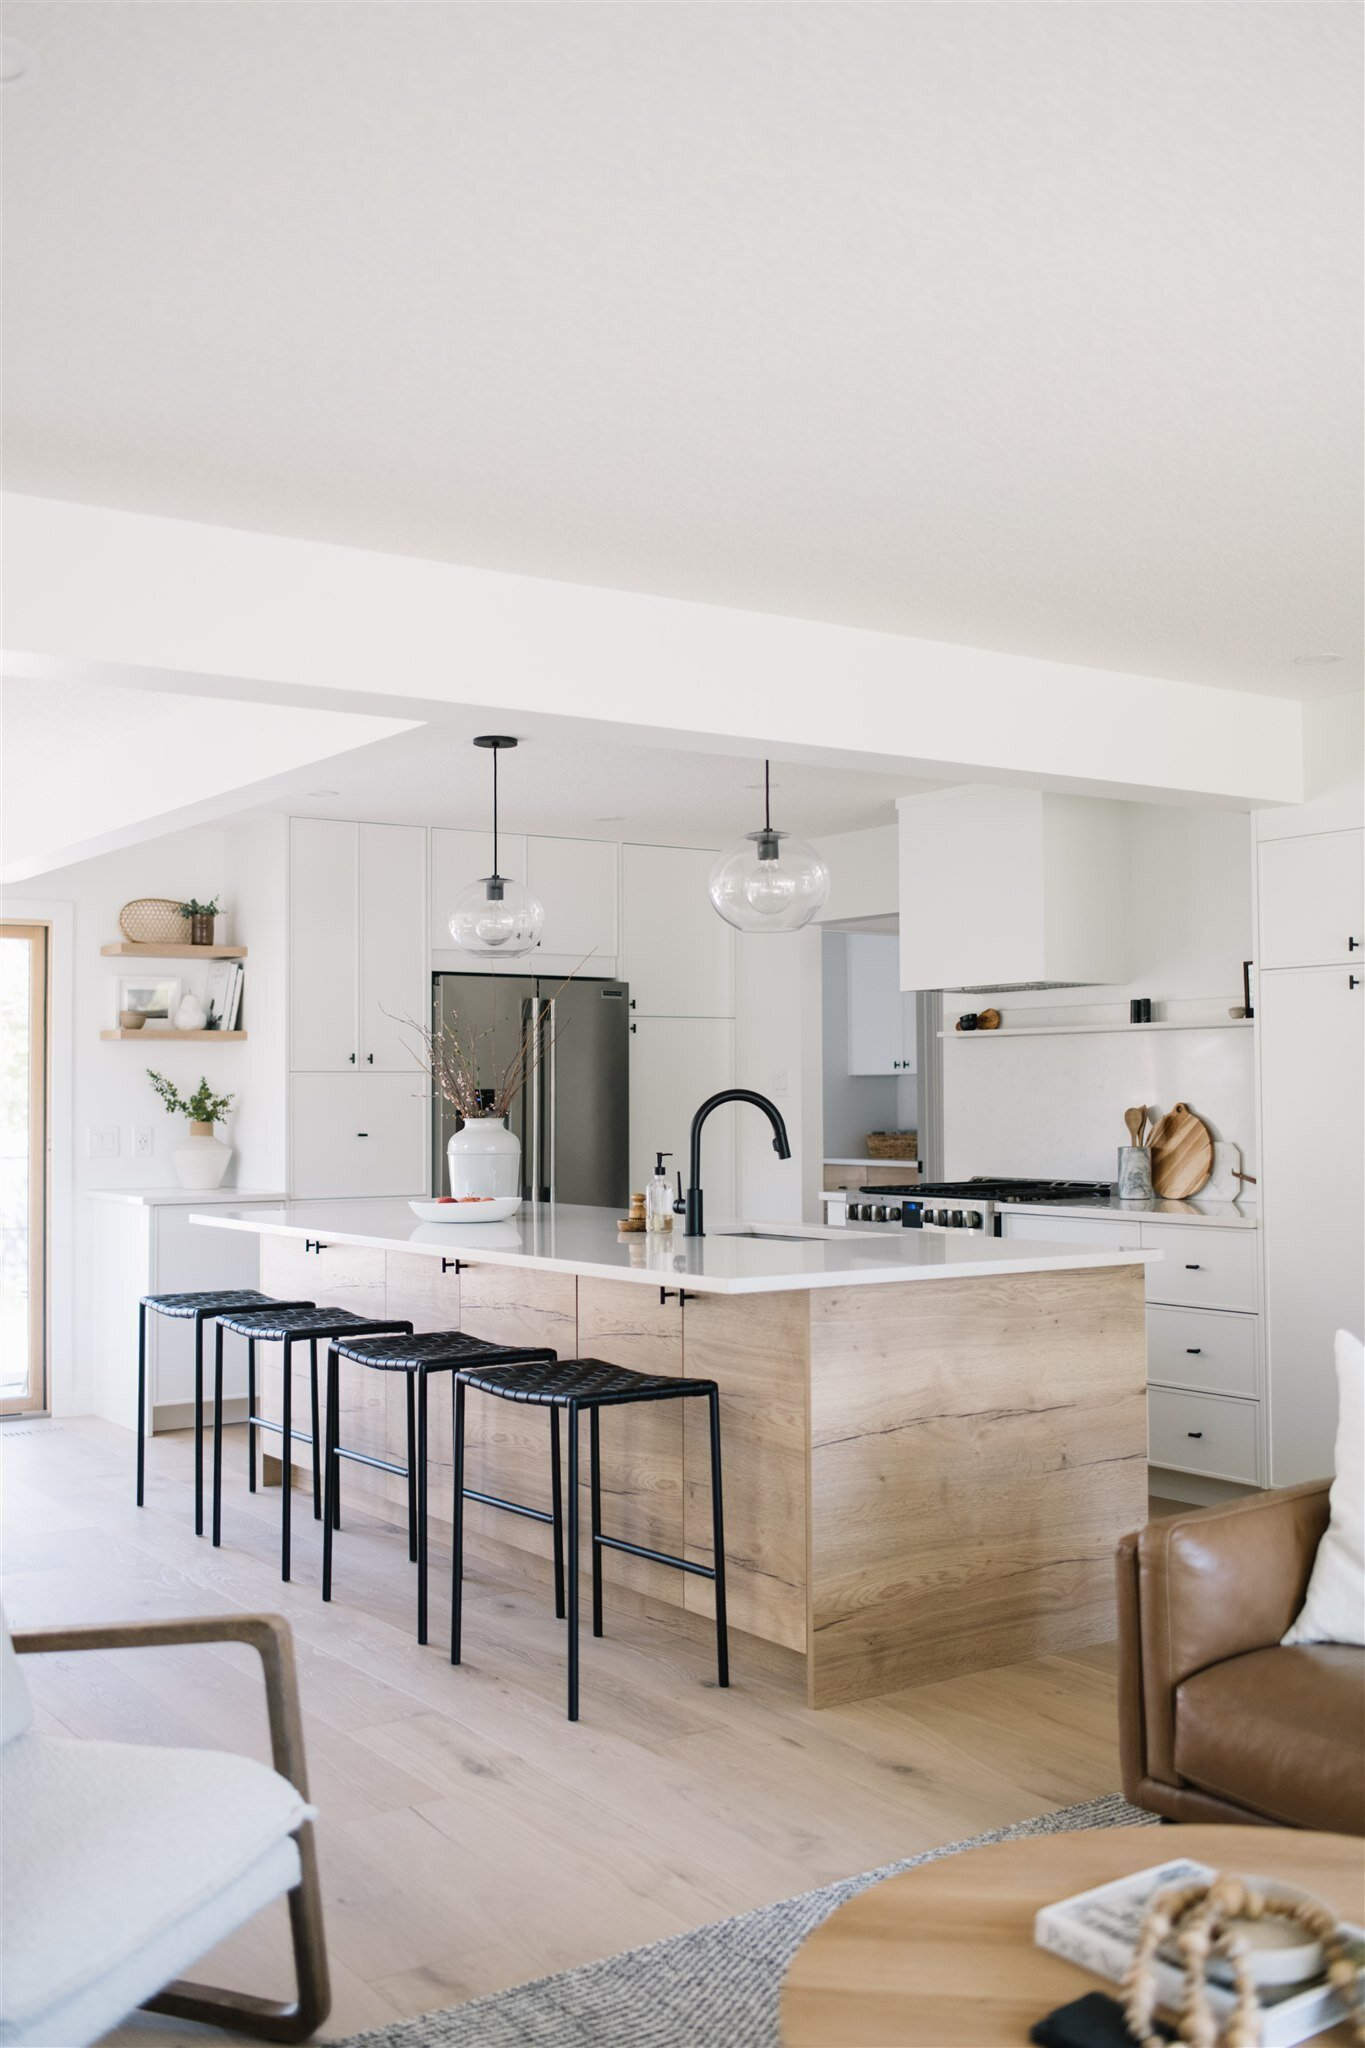 white cabinets and white countertops in a scandinavian style kitchen